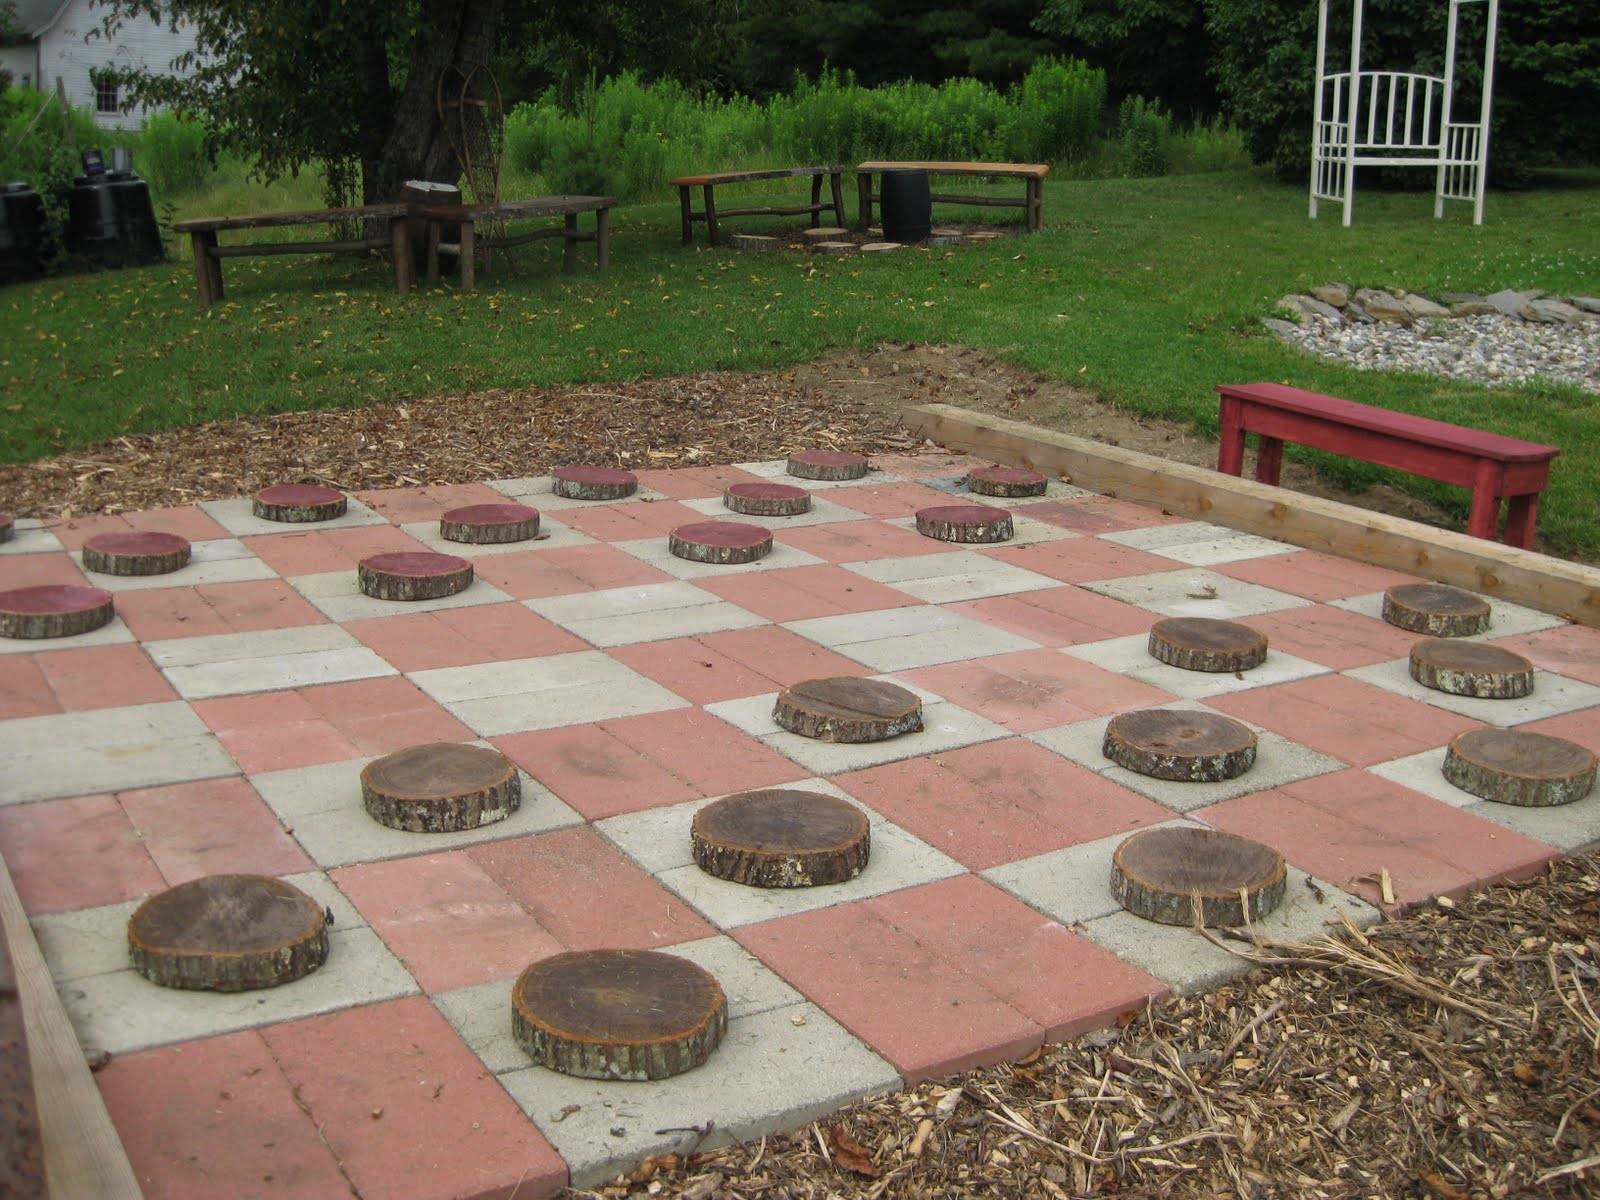 Life-sized backyard checkers or chess